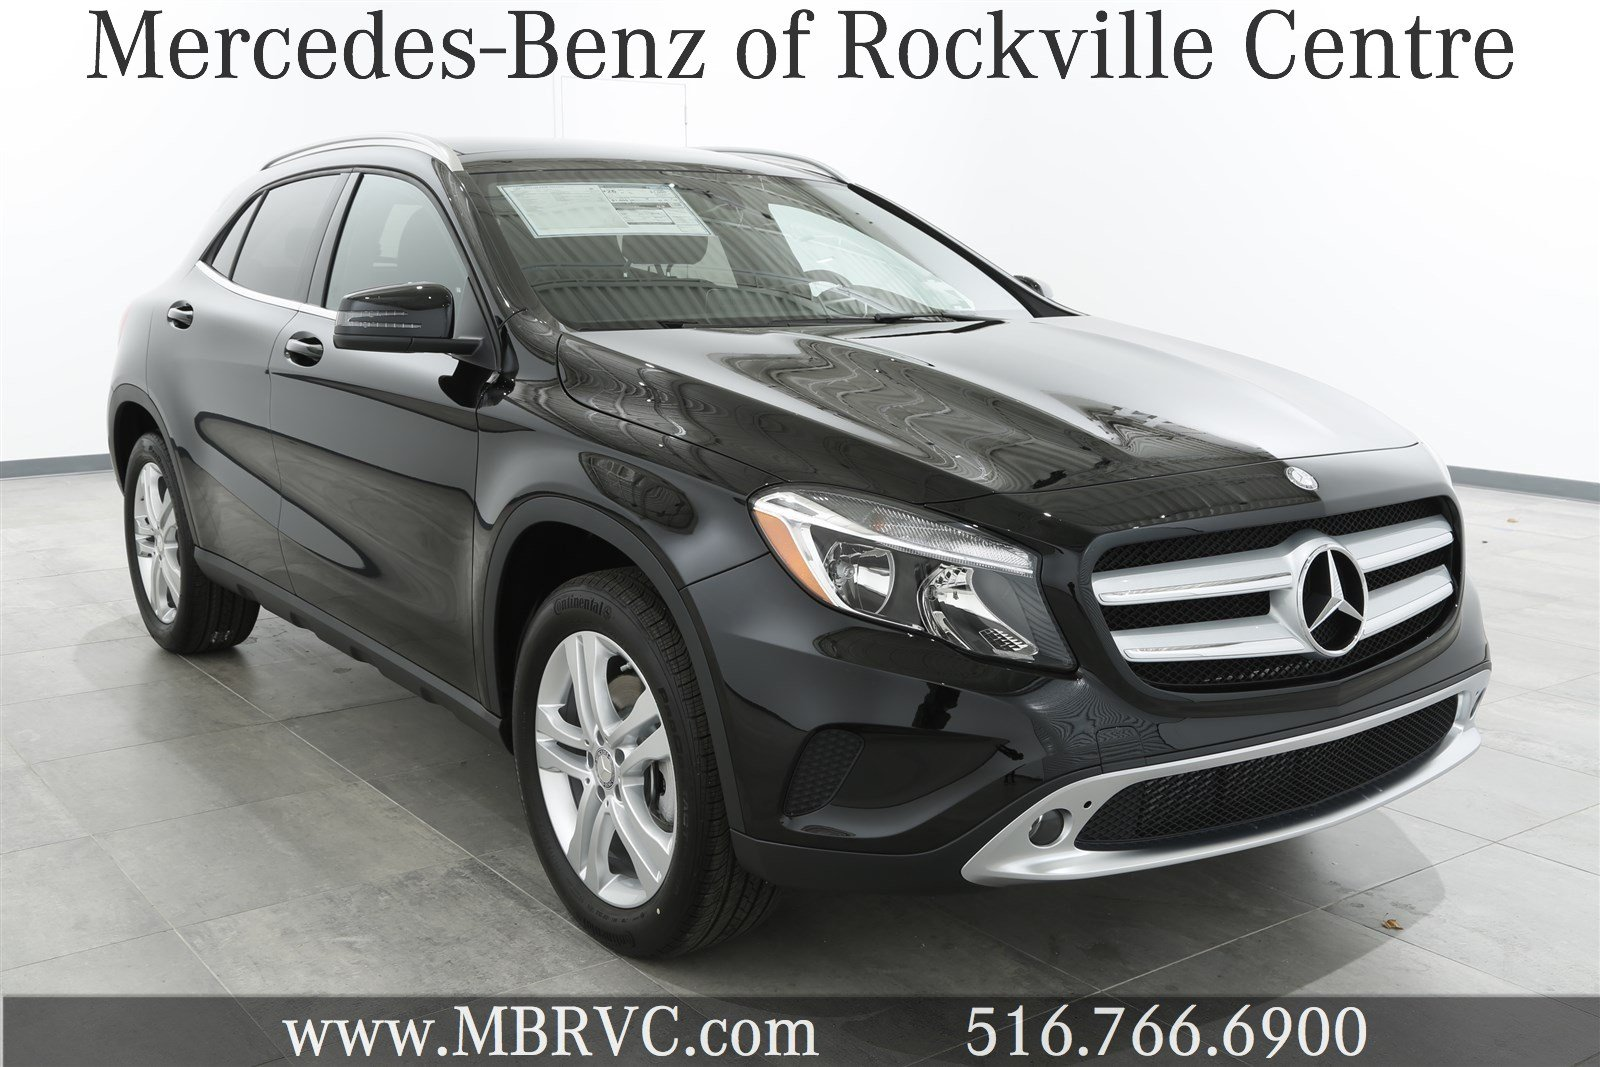 New 2017 mercedes benz gla gla250 suv in rockville centre for 2017 mercedes benz gla250 suv